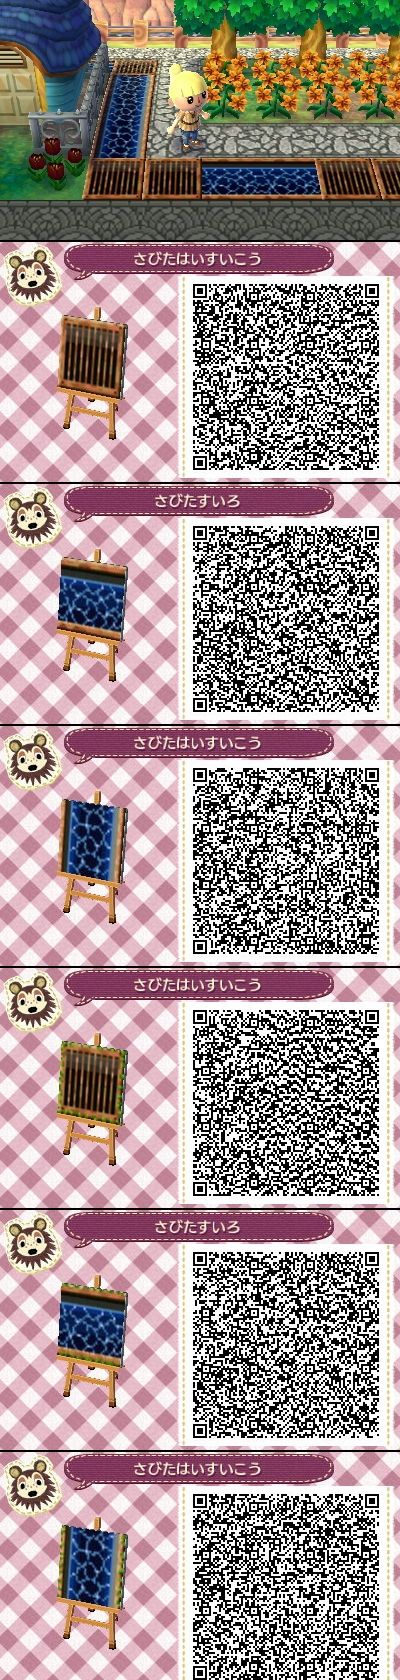 Animal Crossing New Leaf Qr Codes Water Outfits Qr Codes